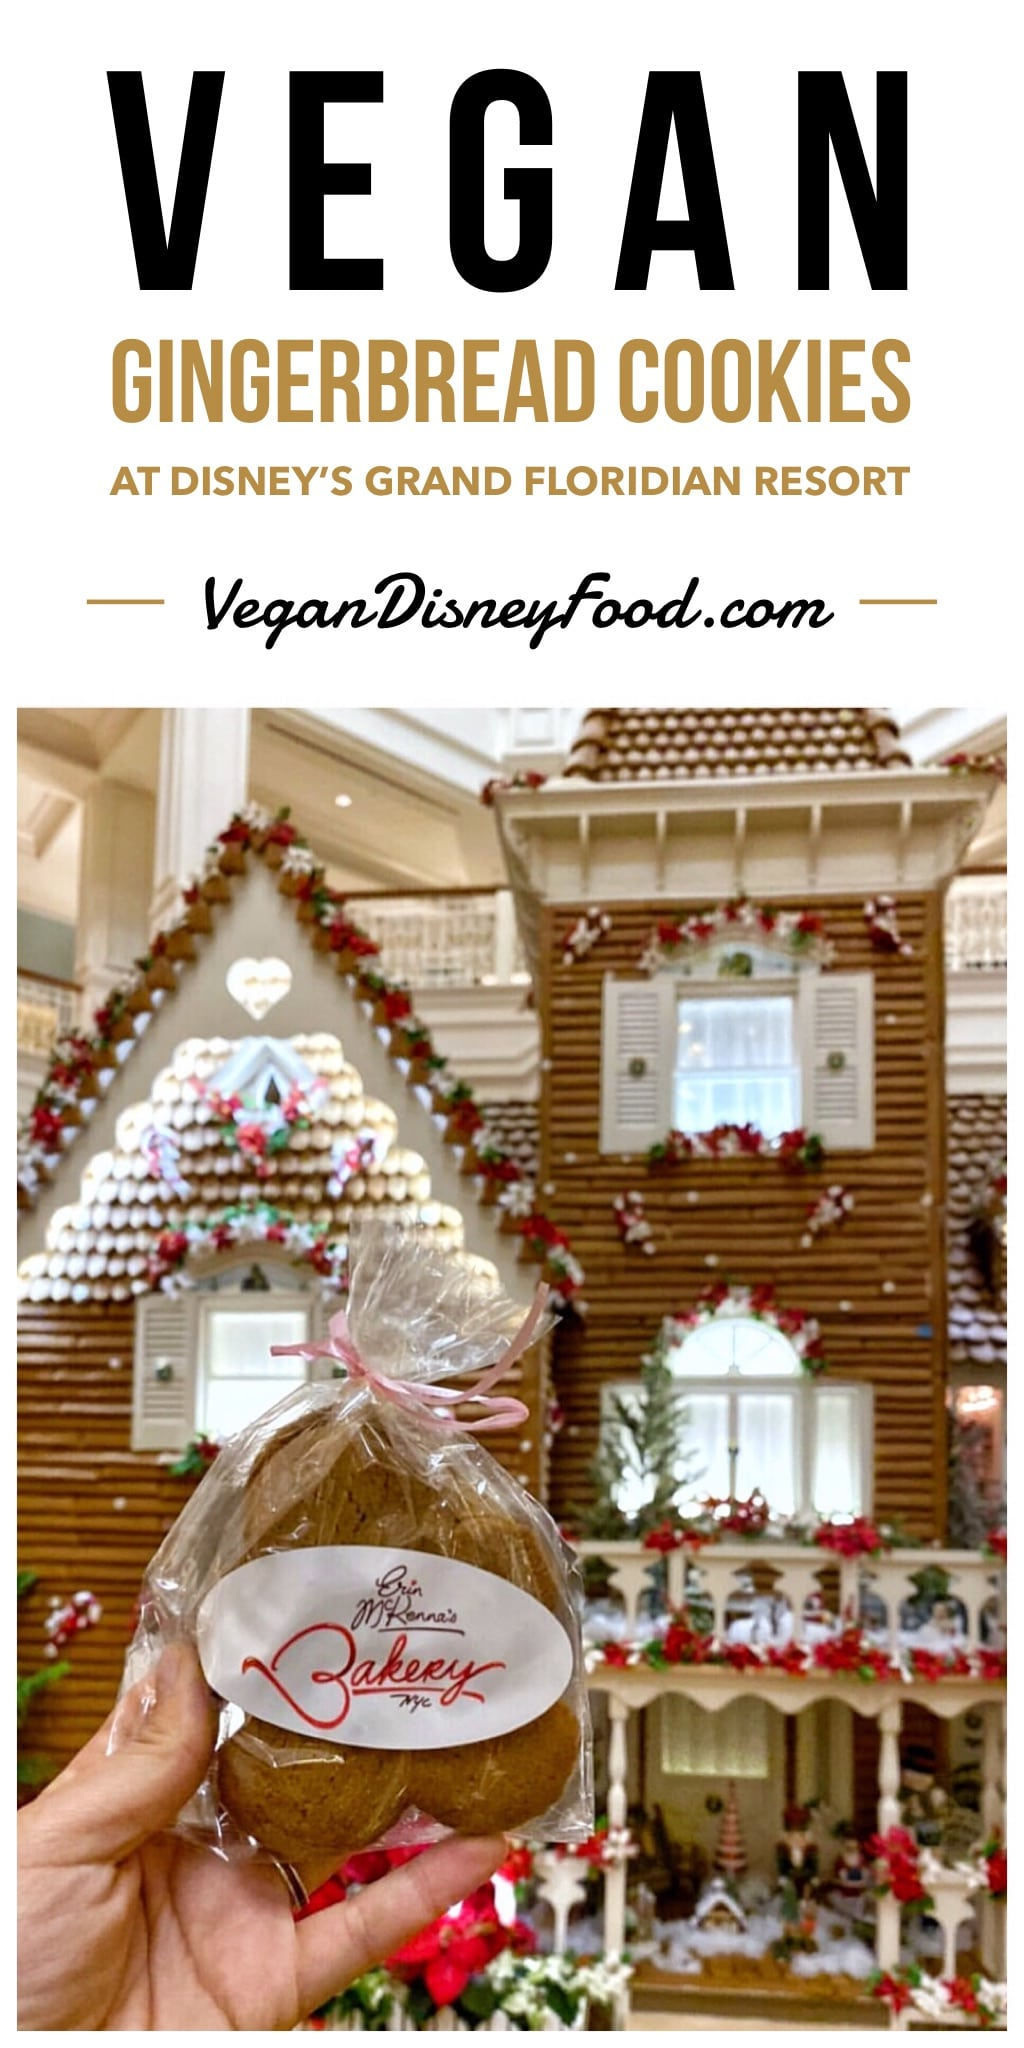 Vegan Christmas Gingerbread Cookies at Disney's Grand Floridian Resort in Walt Disney World